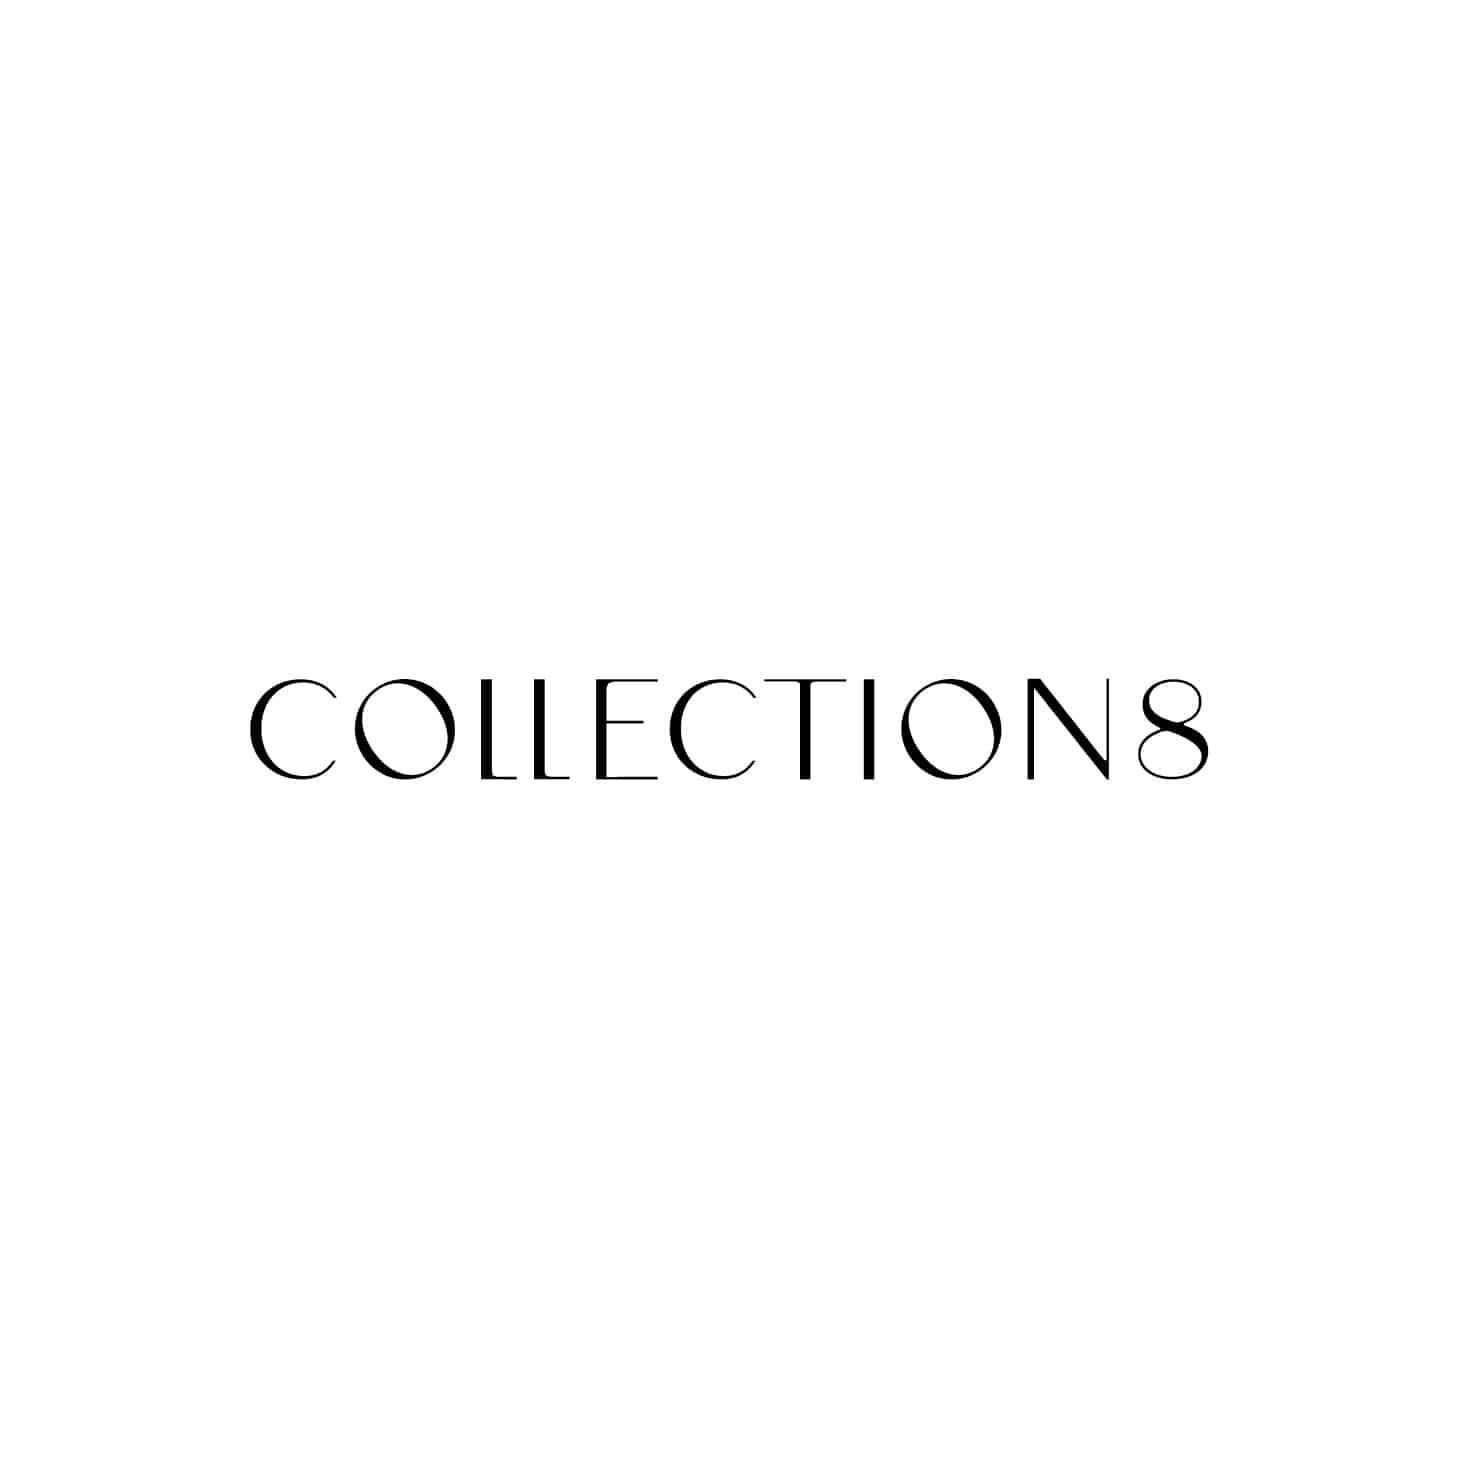 Collection8 logo